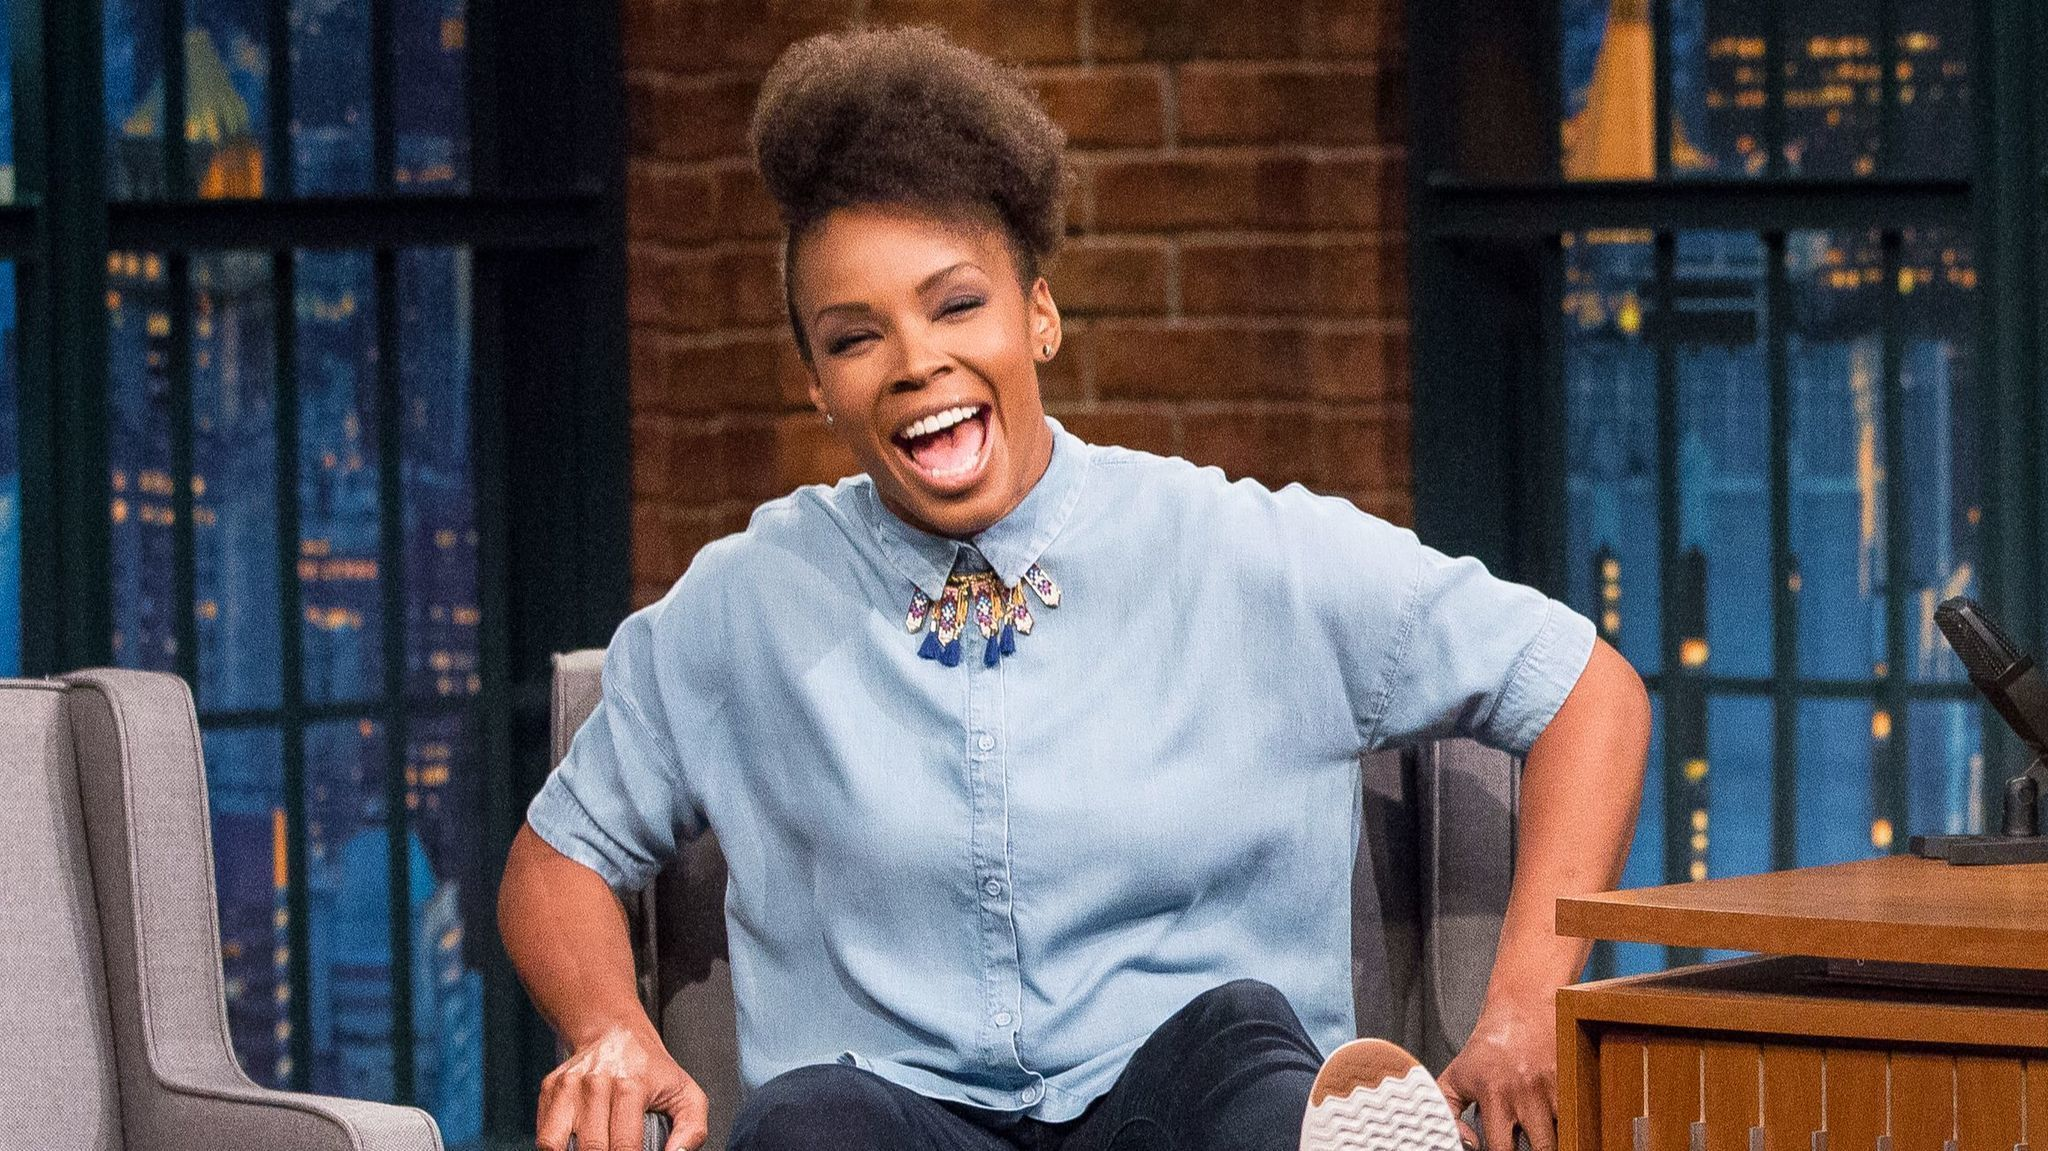 NBC To Give Late Night Writer Amber Ruffin Her Own Show